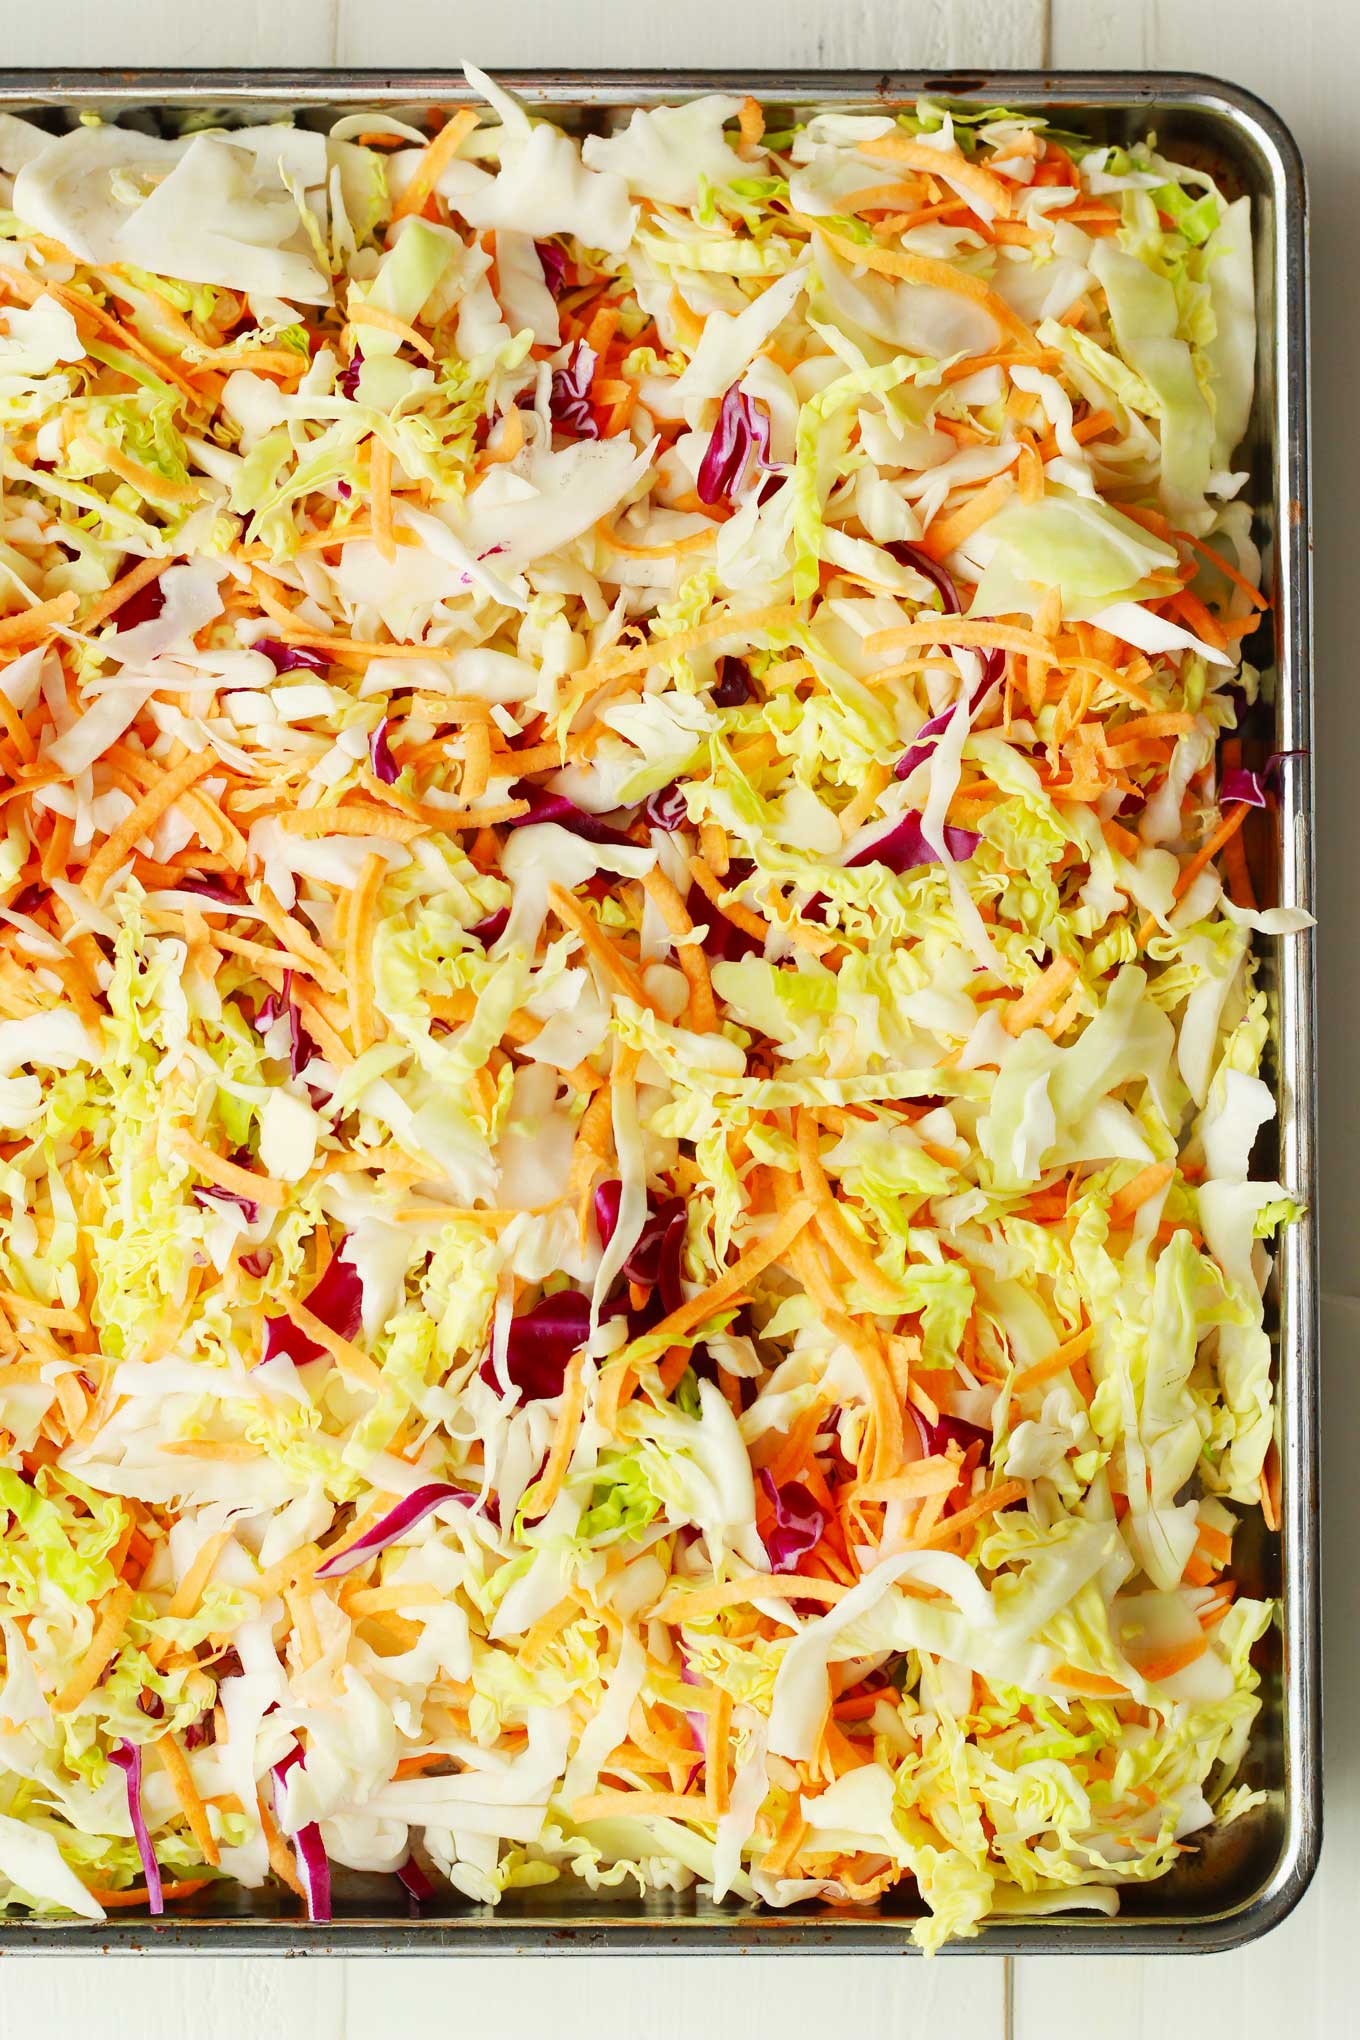 Roasted Winter Slaw | Shredded cabbage and sweet potatoes are roasted to savory side dish perfection in 20 minutes! Vegan, gluten-free, plant-based | https://eatwithinyourmeans.com